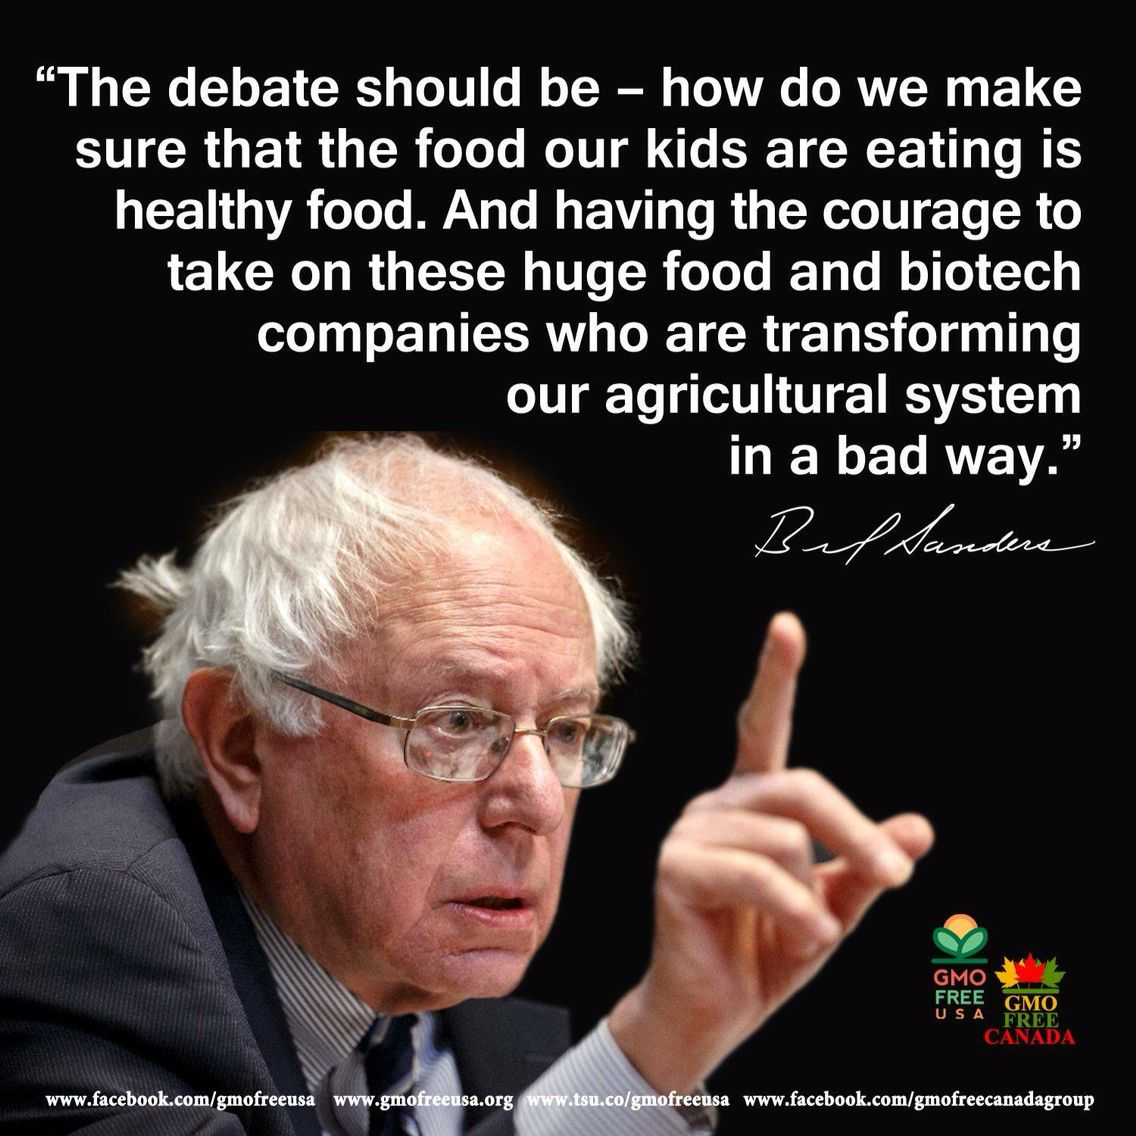 Bernie Sanders Calls Out Monsanto and Vows to Protect